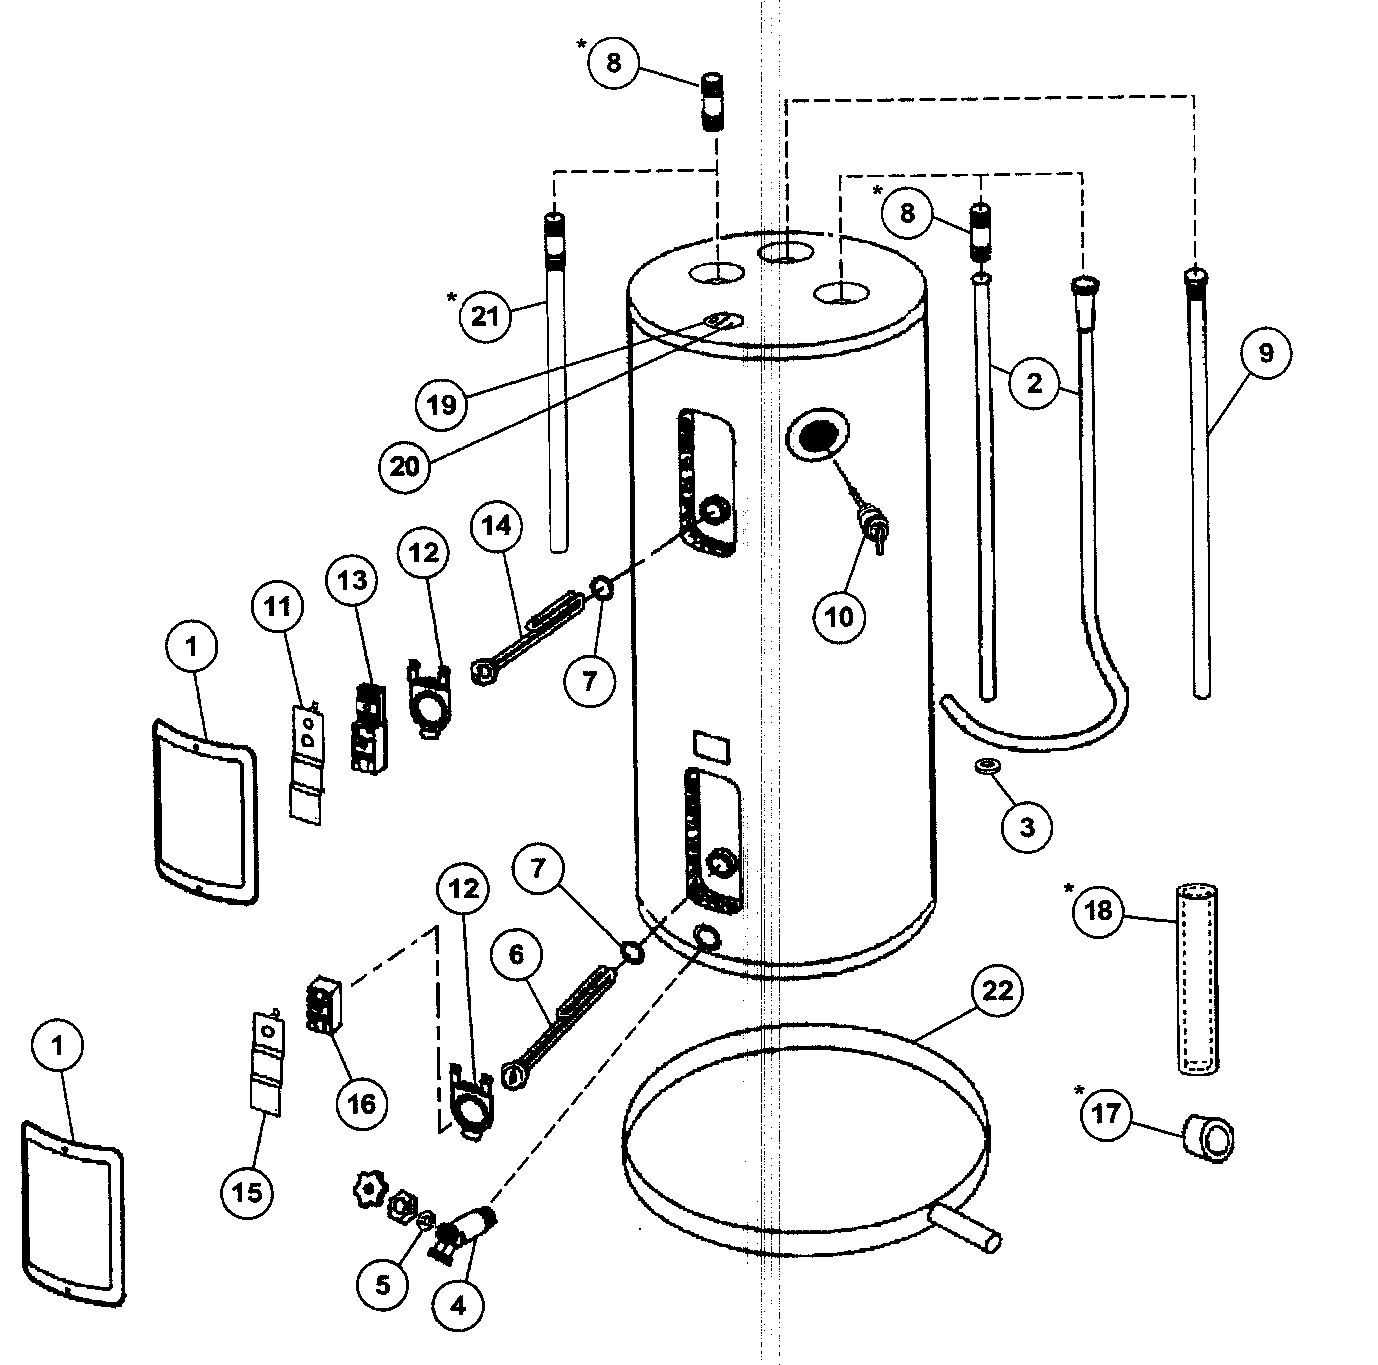 camco water heater wiring diagram